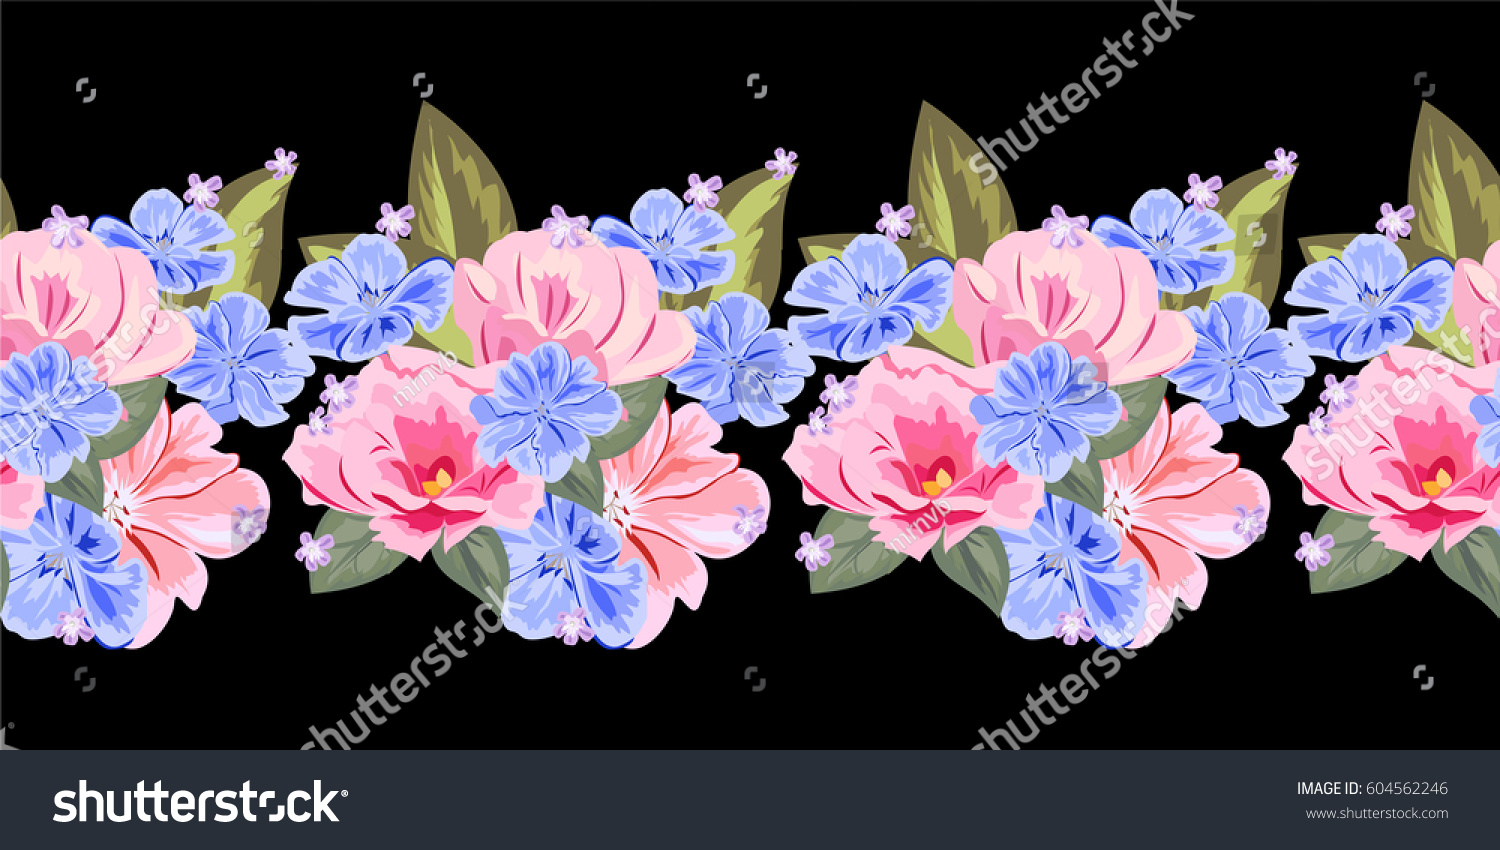 Seamless Floral Border Cute Pink Blue Stock Vector ...